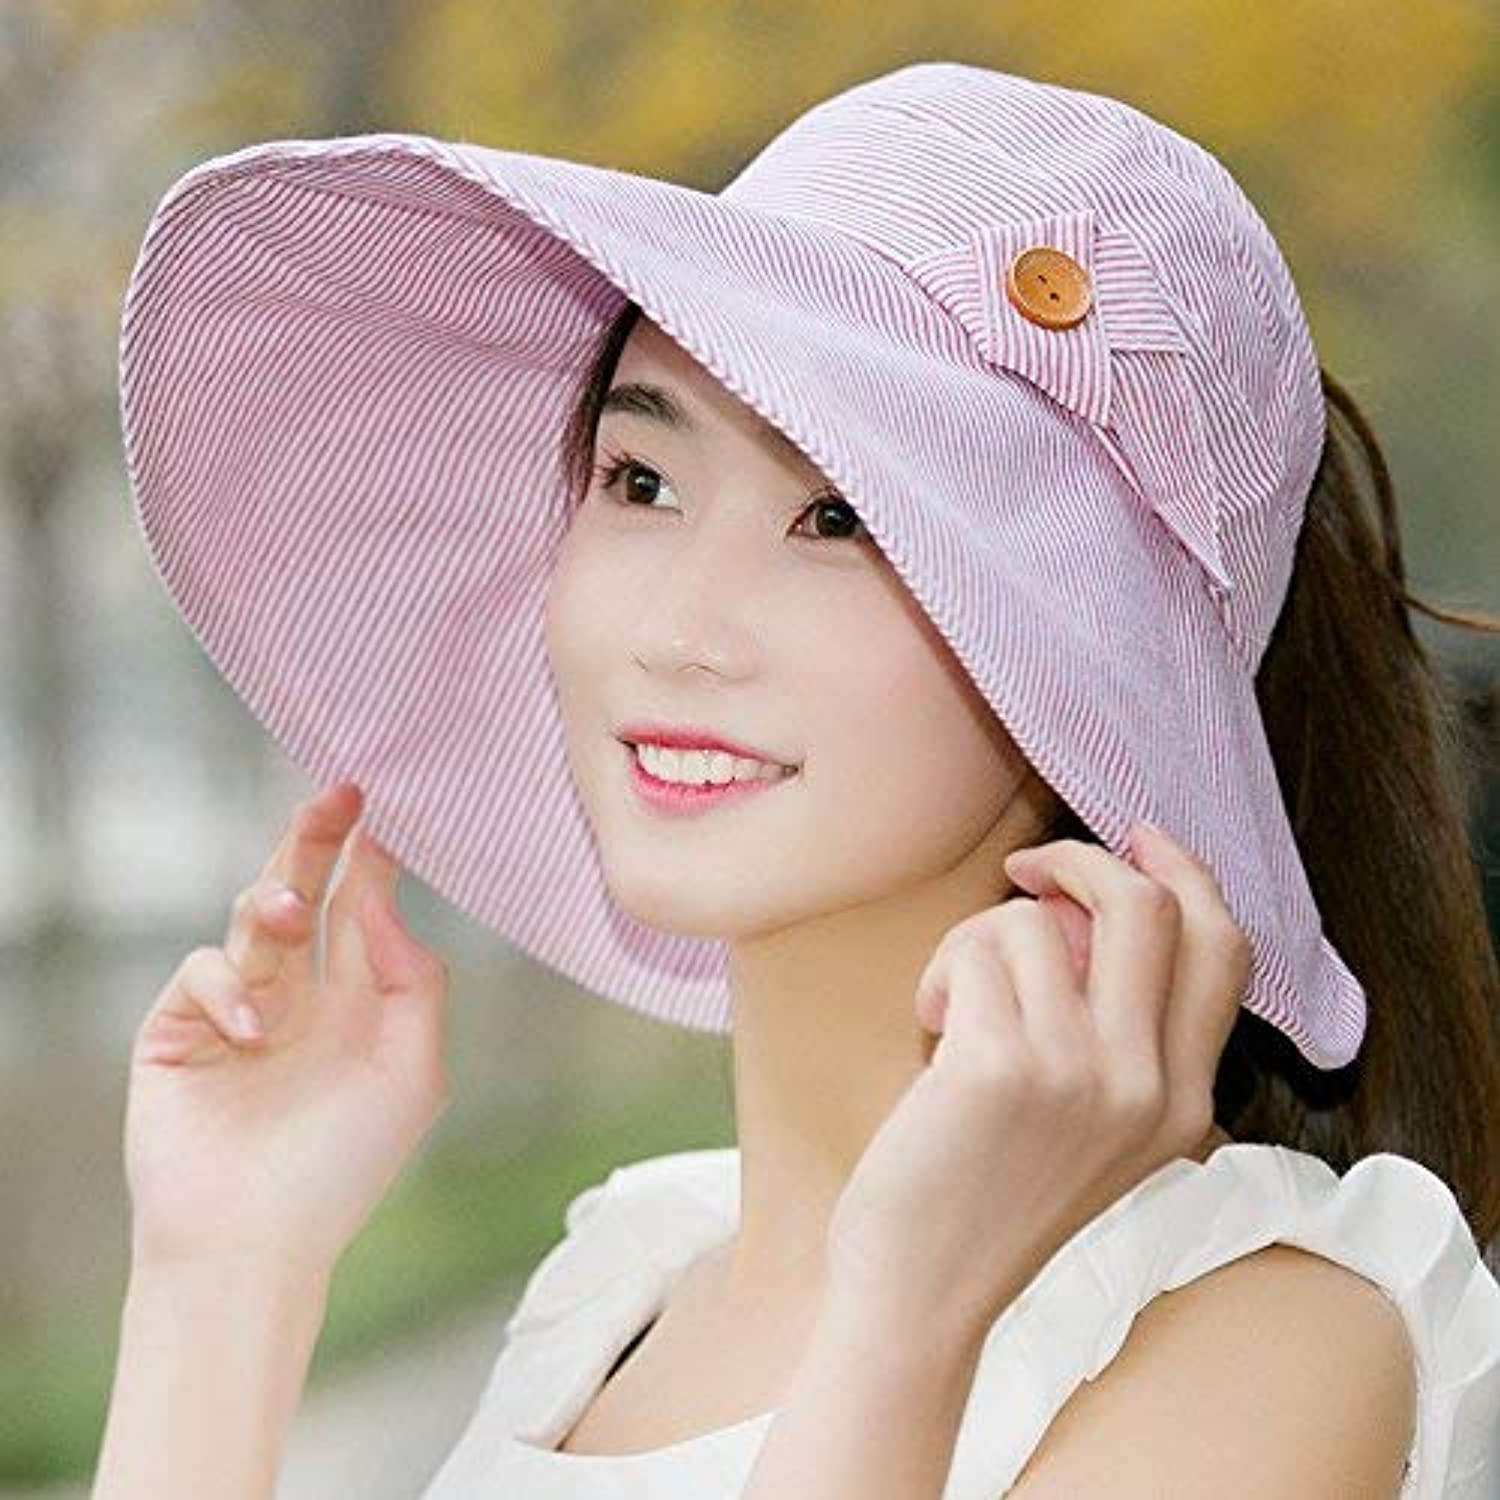 Dianye Hat female spring and summer travelpredection sun hat